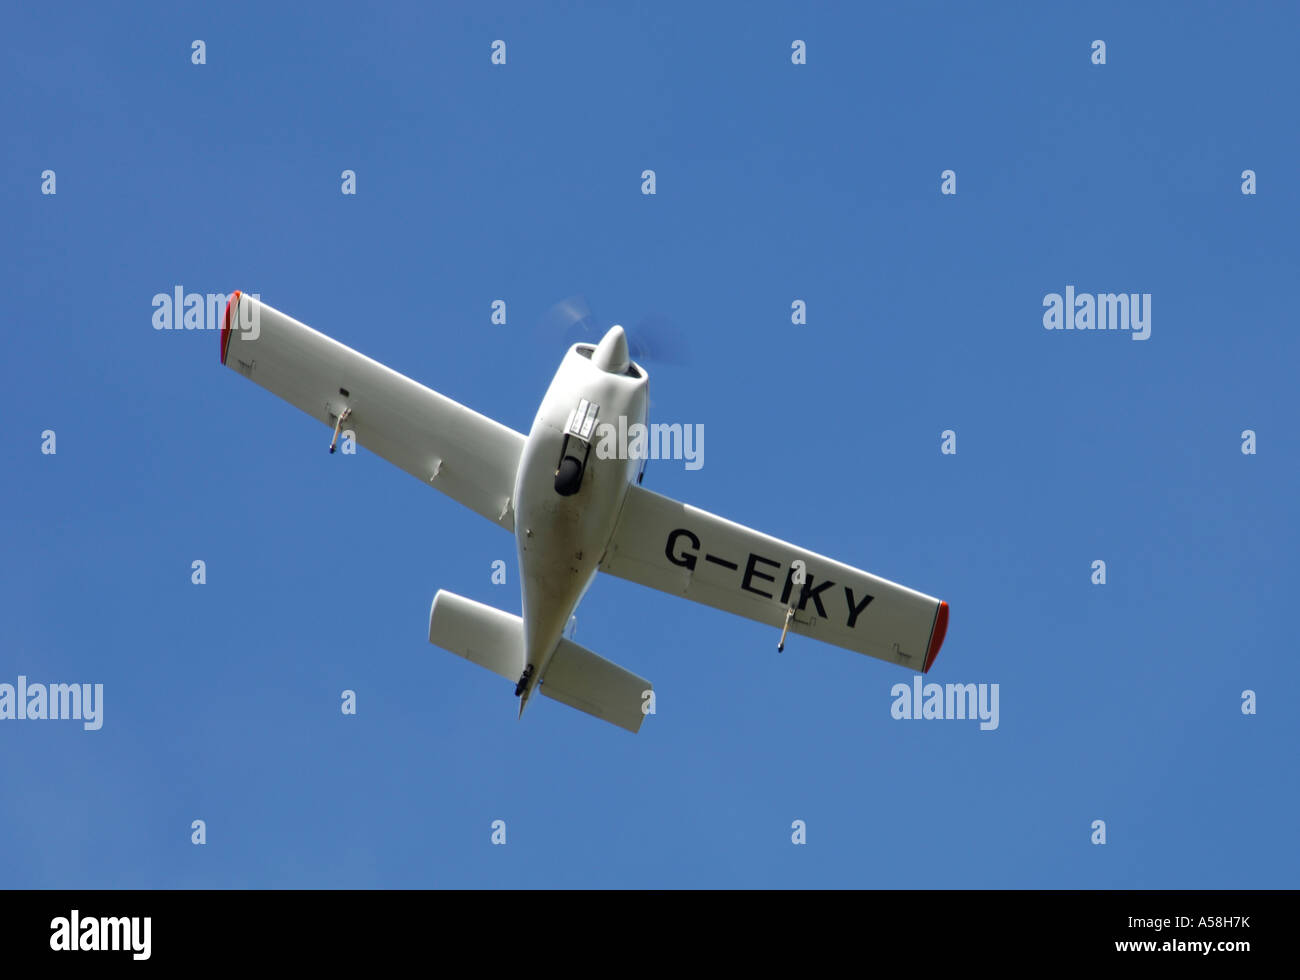 Rotax 912 Uls Stock Photos & Rotax 912 Uls Stock Images - Alamy